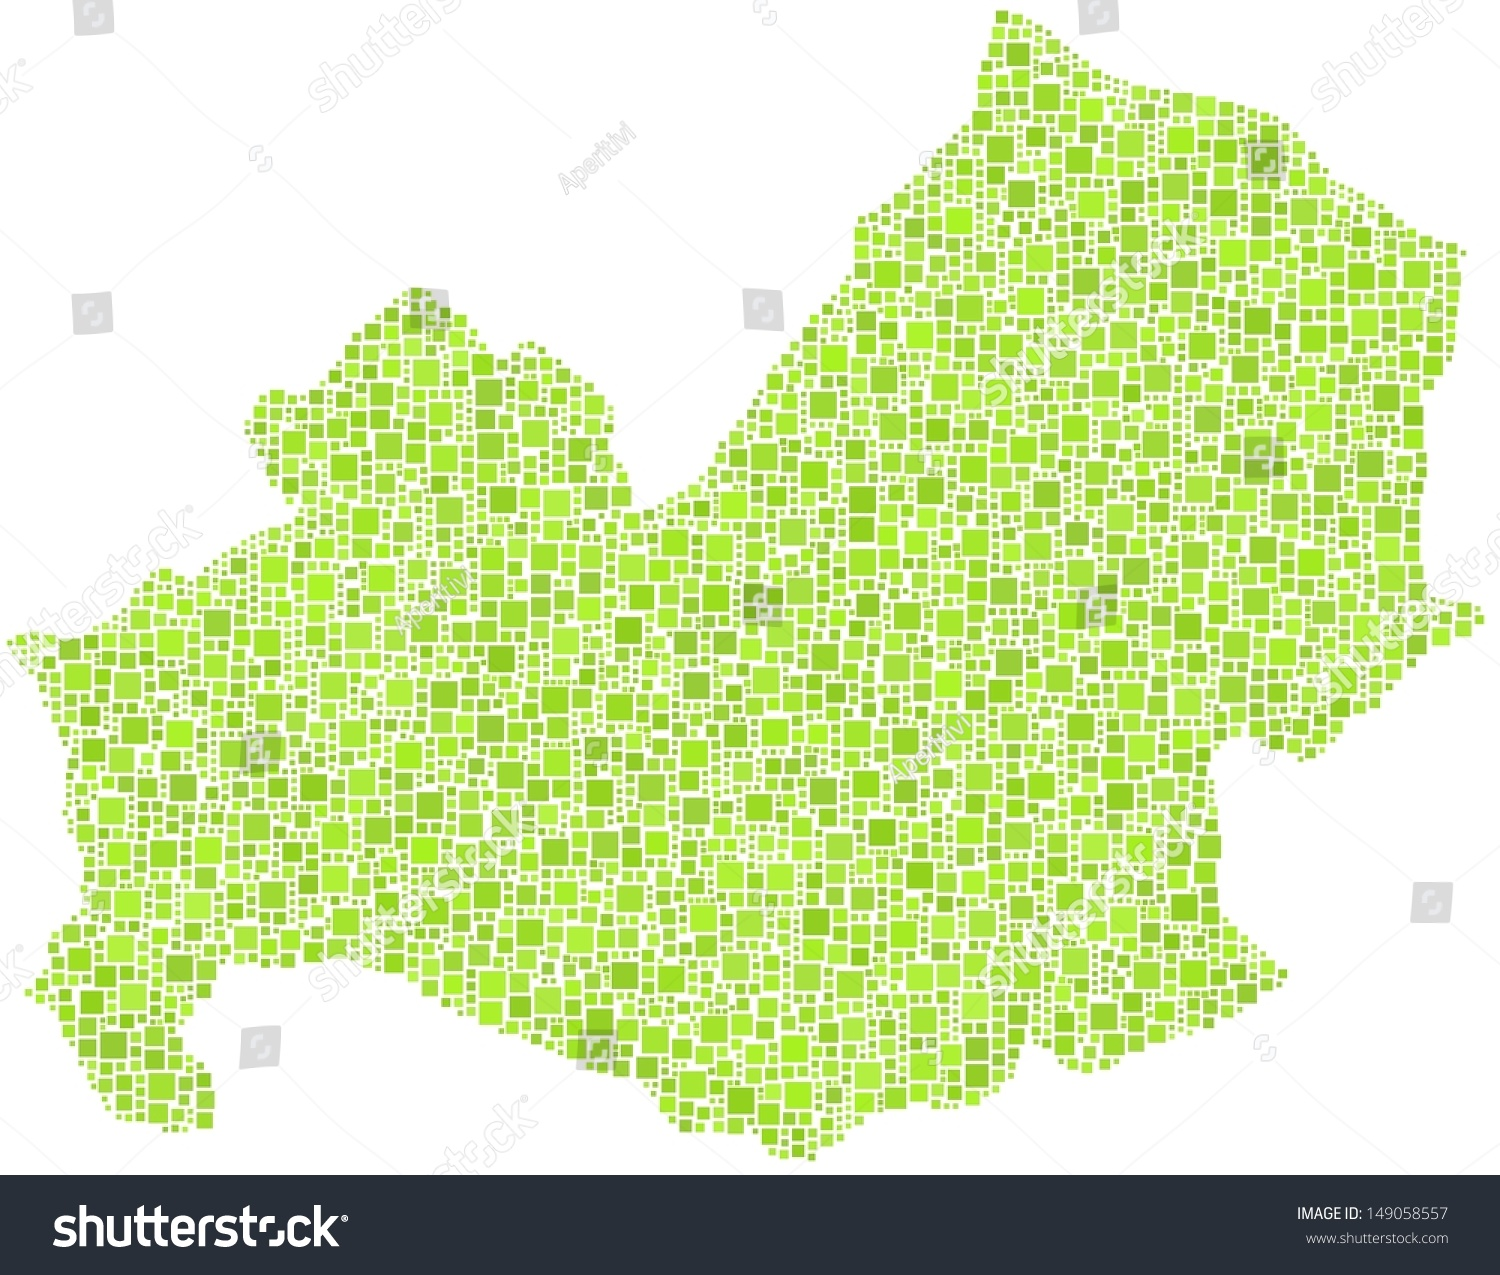 Decorative Map Molise Italy Mosaic Green Stock Vector 149058557